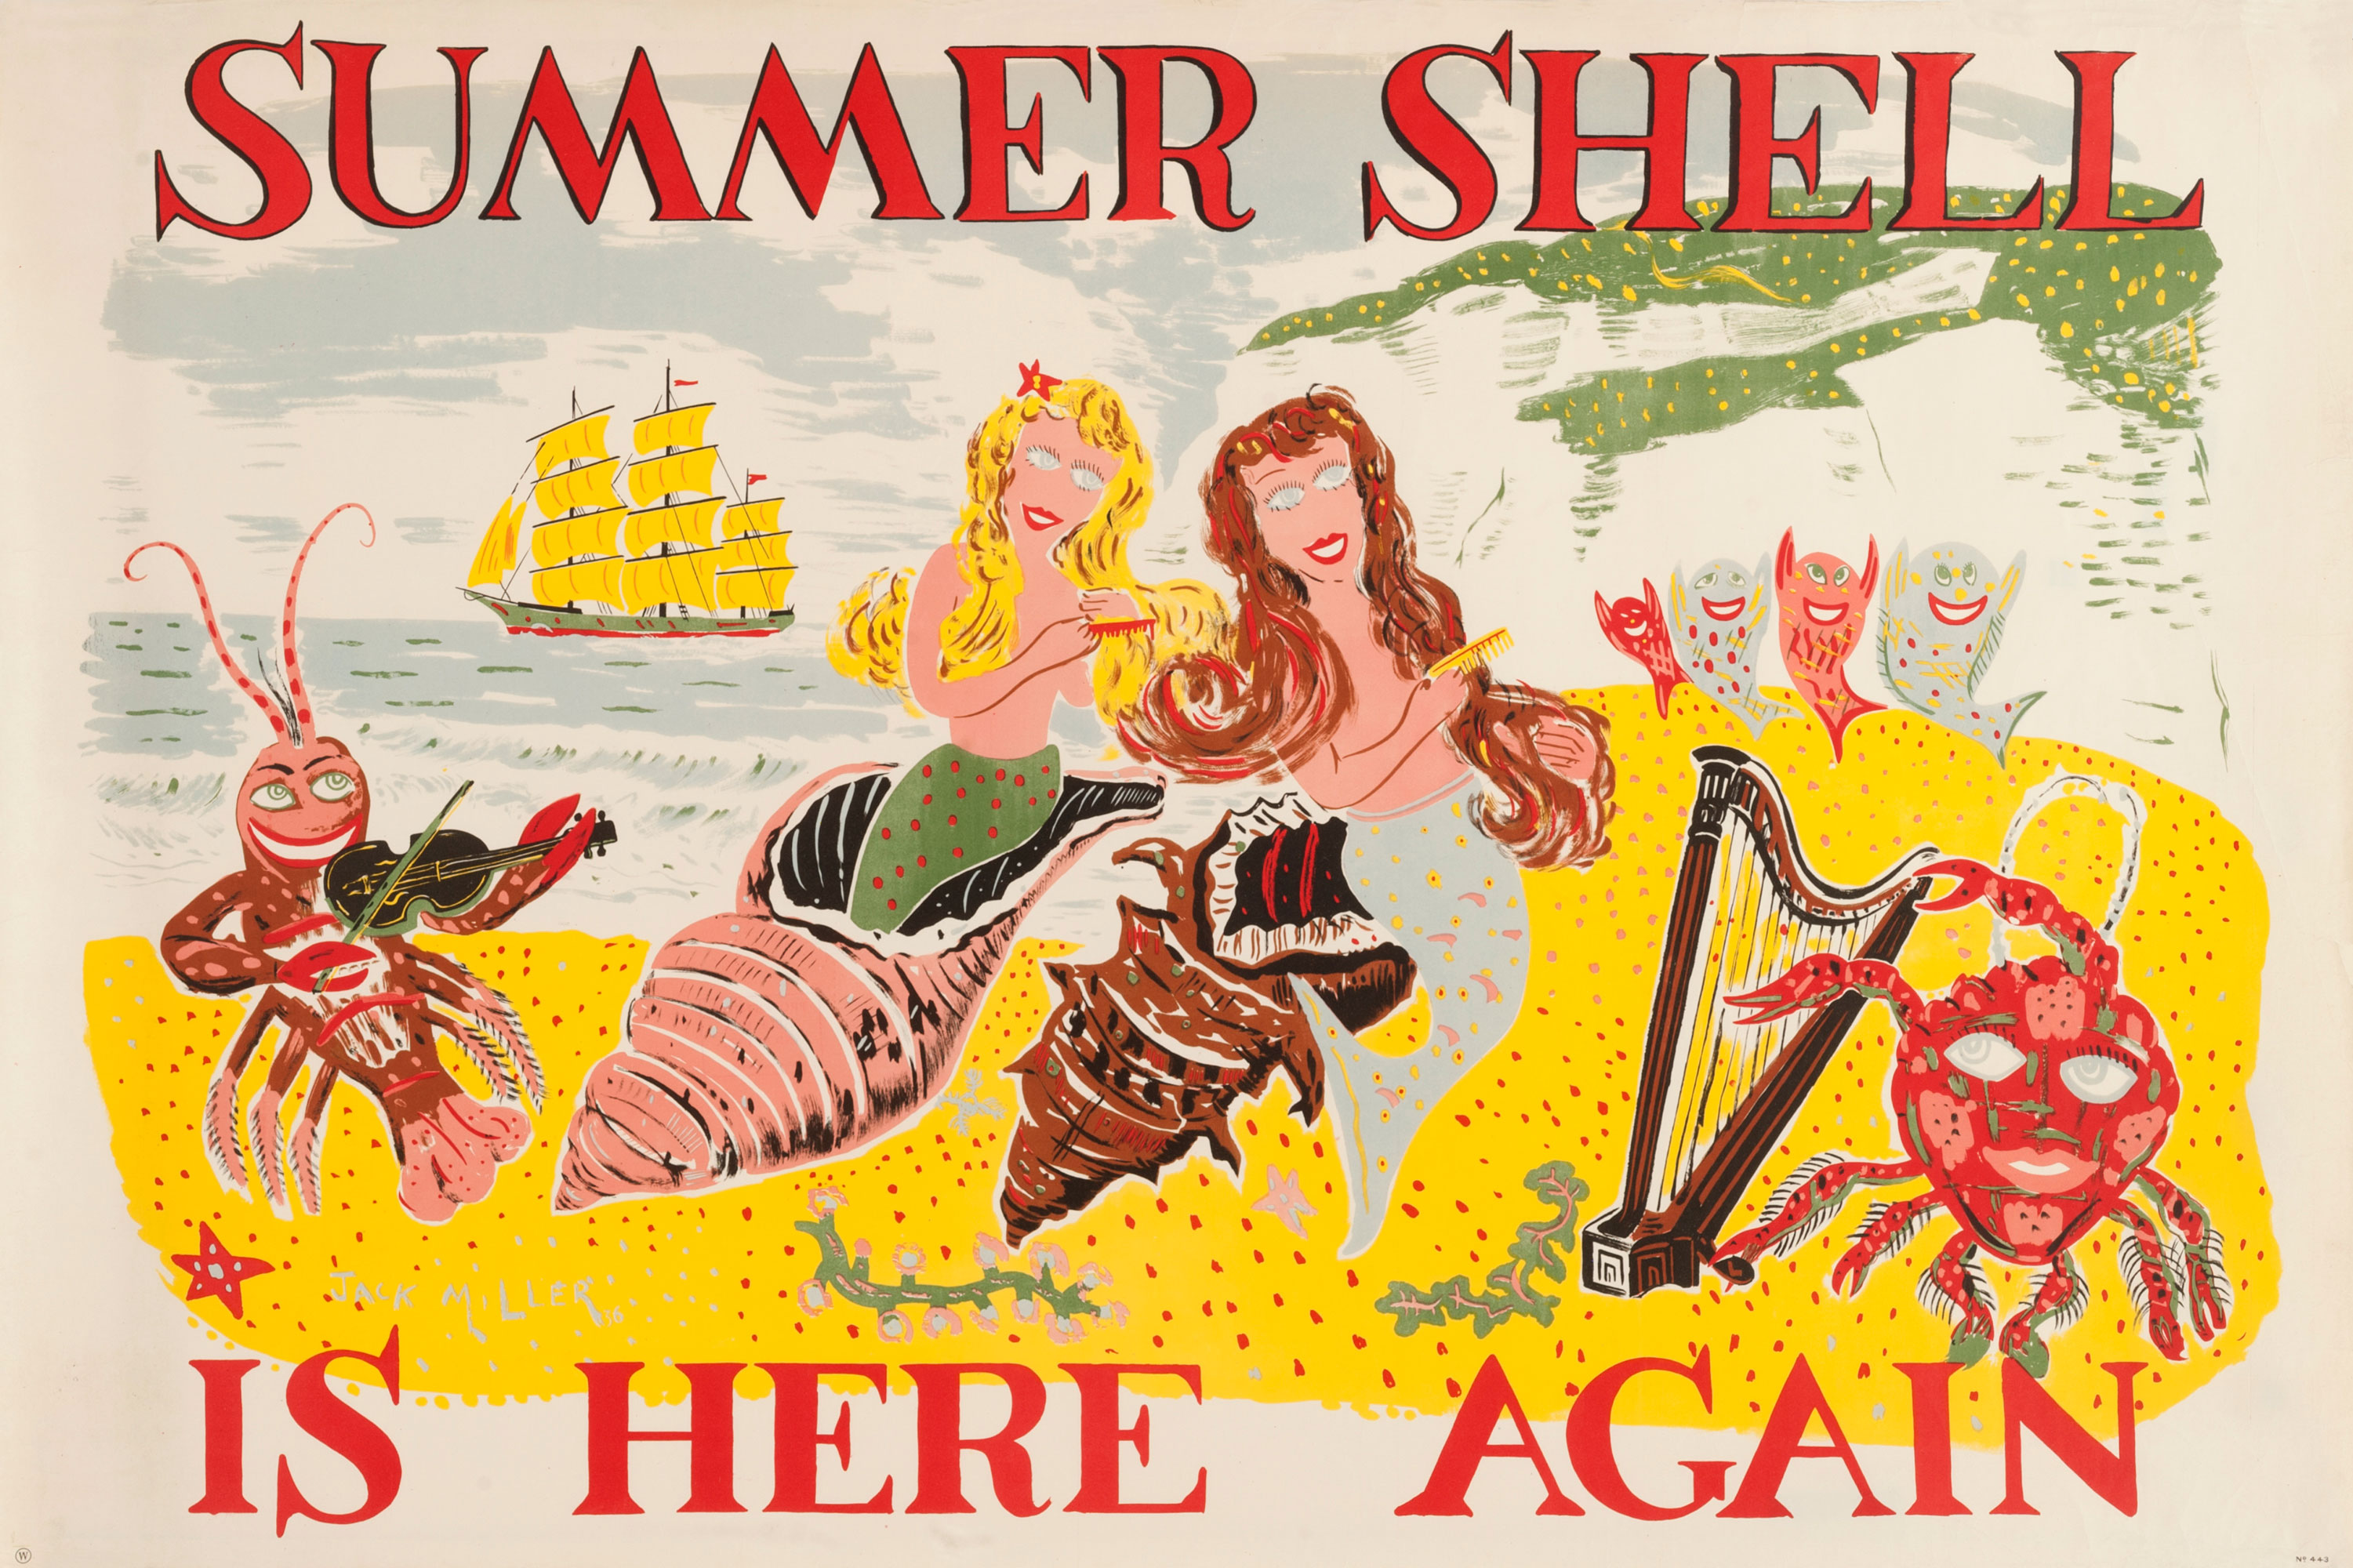 Shell poster number 443, Summer Shell is here again by Jack Miller. Cartoon style painting depicting two mermaids on a beach emerging from conch shells and combing their hair. Around them, a lobster plays a fiddle and a crab like creature plays a harp. Four fish appear to be dancing in the background. A galleon style ship sails on the sea near to a cliff.